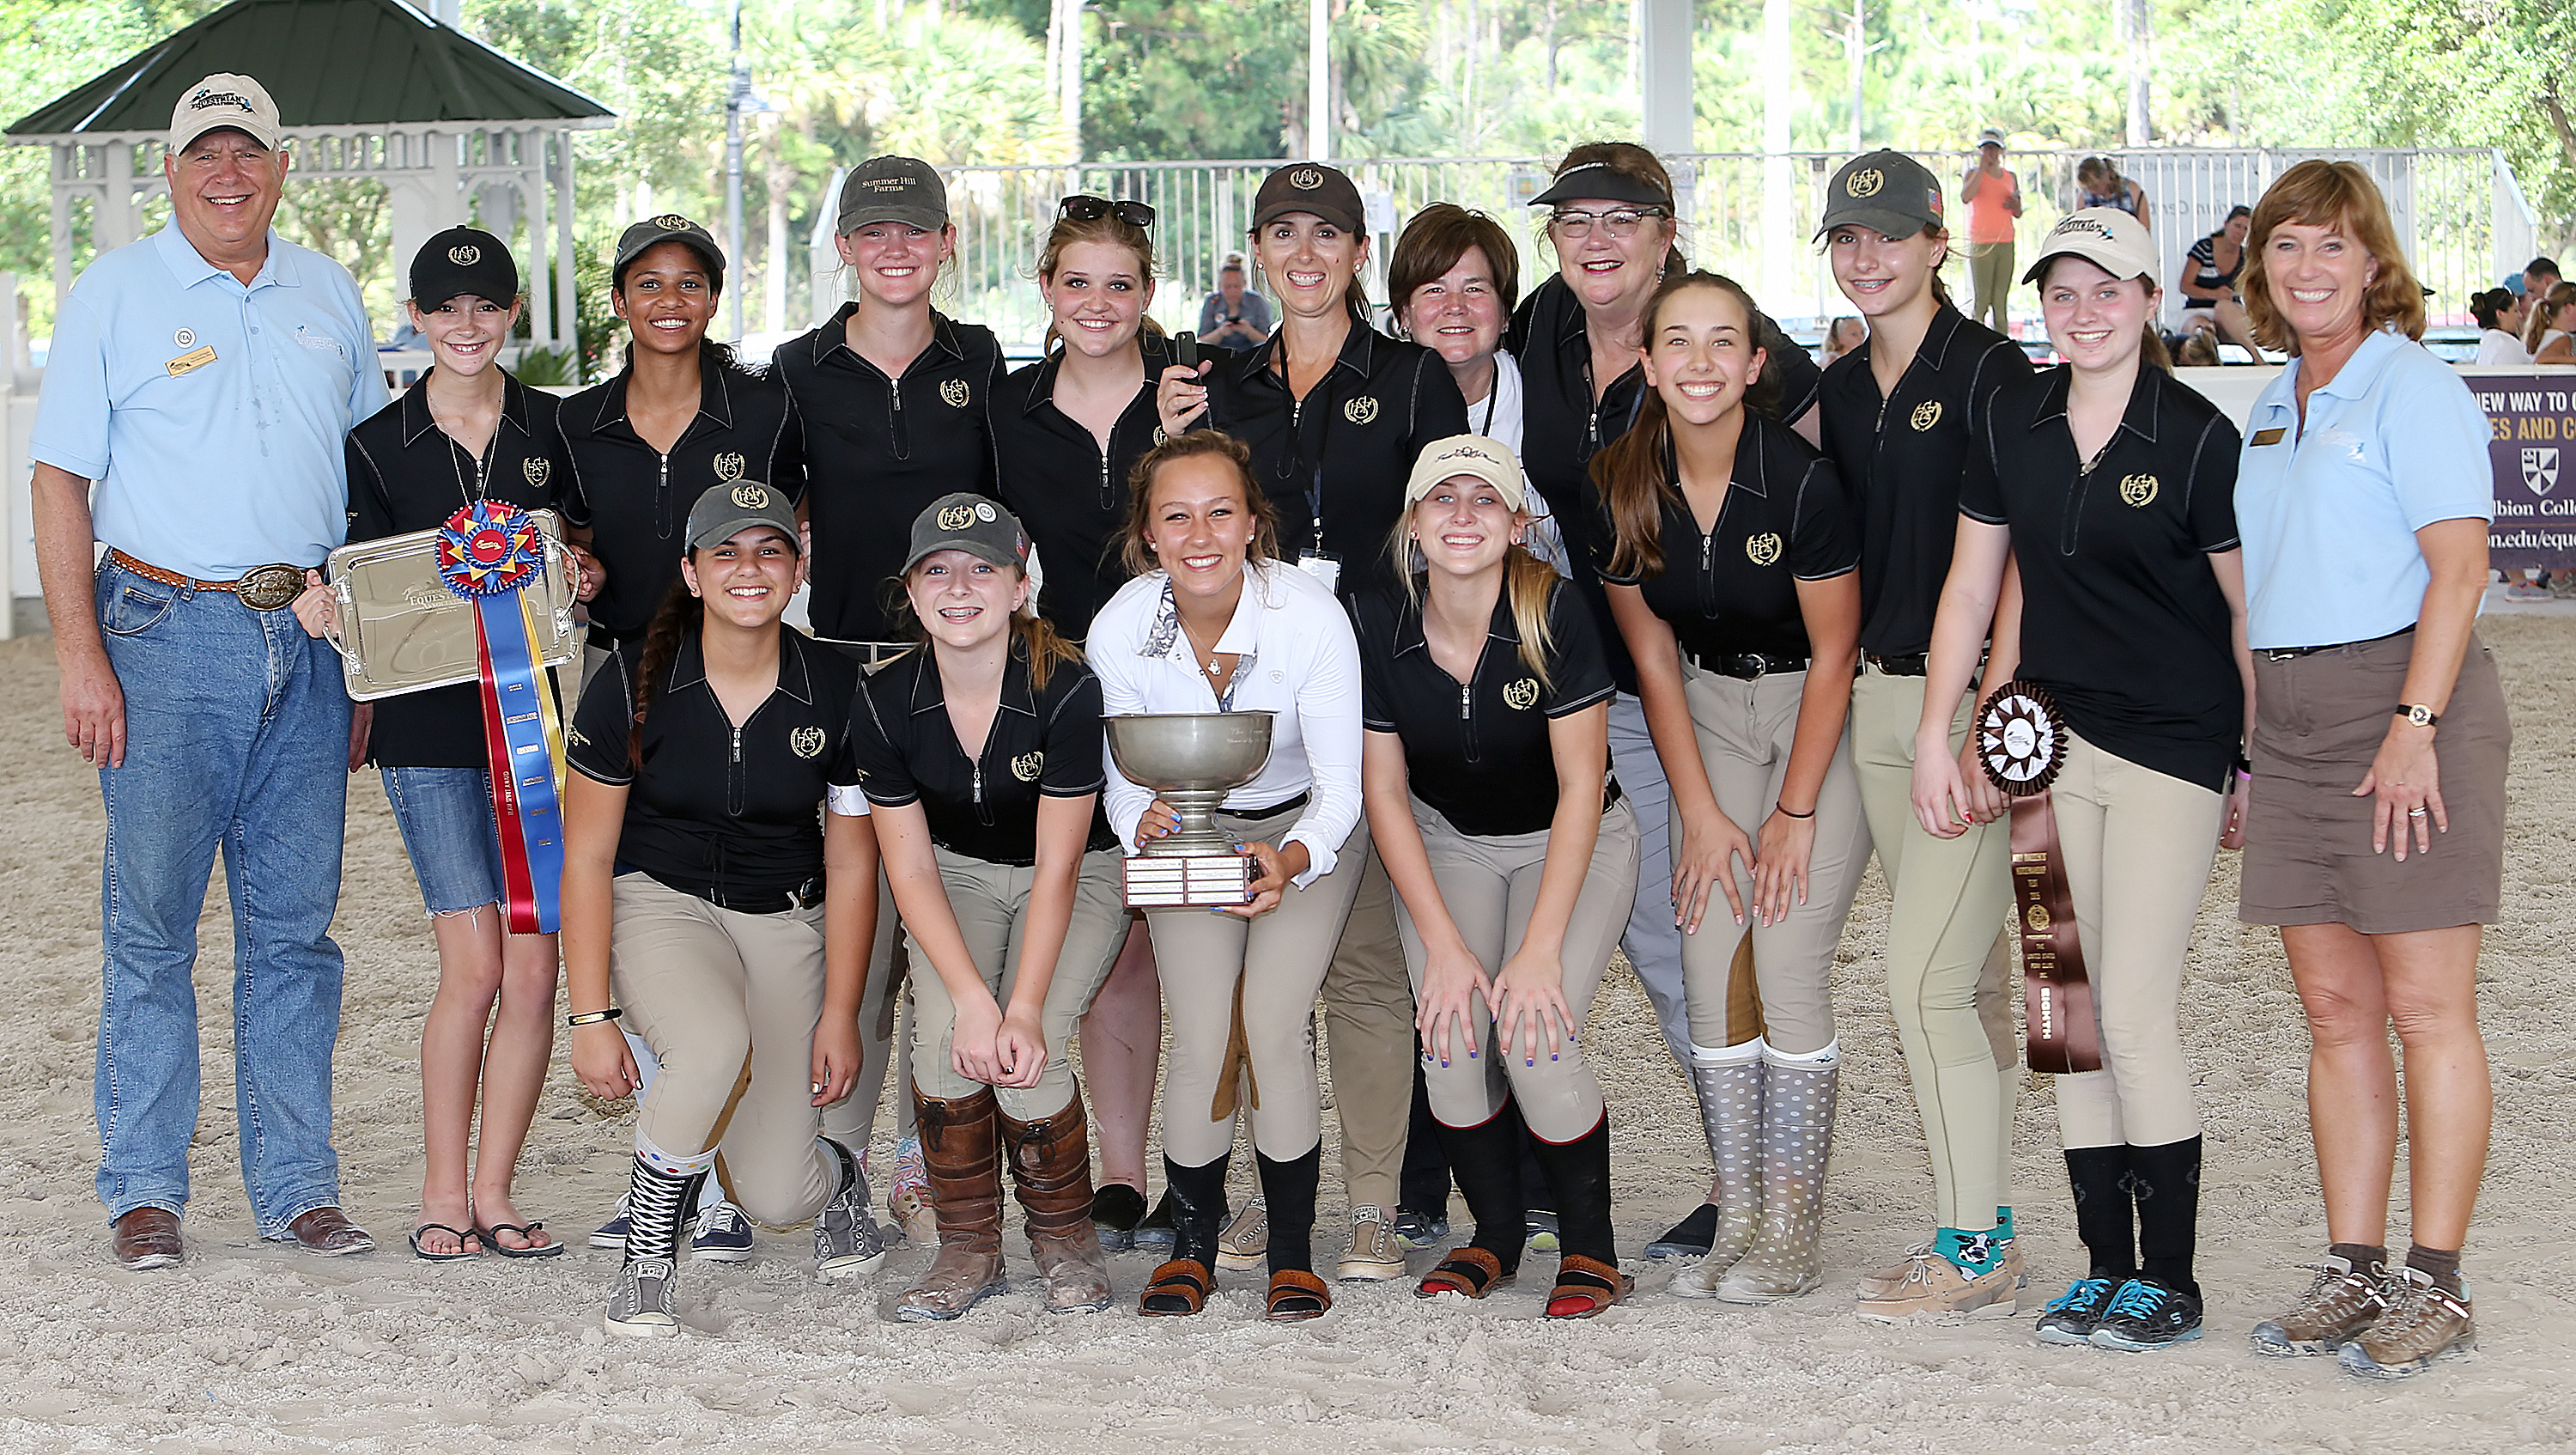 Summer Hill Farms Equestrian Team - Flower Mound, Texas, 2015 Team Spirit Award left to right: back row:  Myron Leff (IEA founder), Madison Butz, Avery Dukes, Sydney Boren, Alexis Smith, Amy Greene (coach), Melissa Foster, Susan Frey, Christine Johnson, Olivia Donnarumma, Roxane Lawrence (IEA founder).  Front row: Taylor Chahal, Reagan Havron, Alex Arthur, Lauren Lacy, Avery Ackalbein